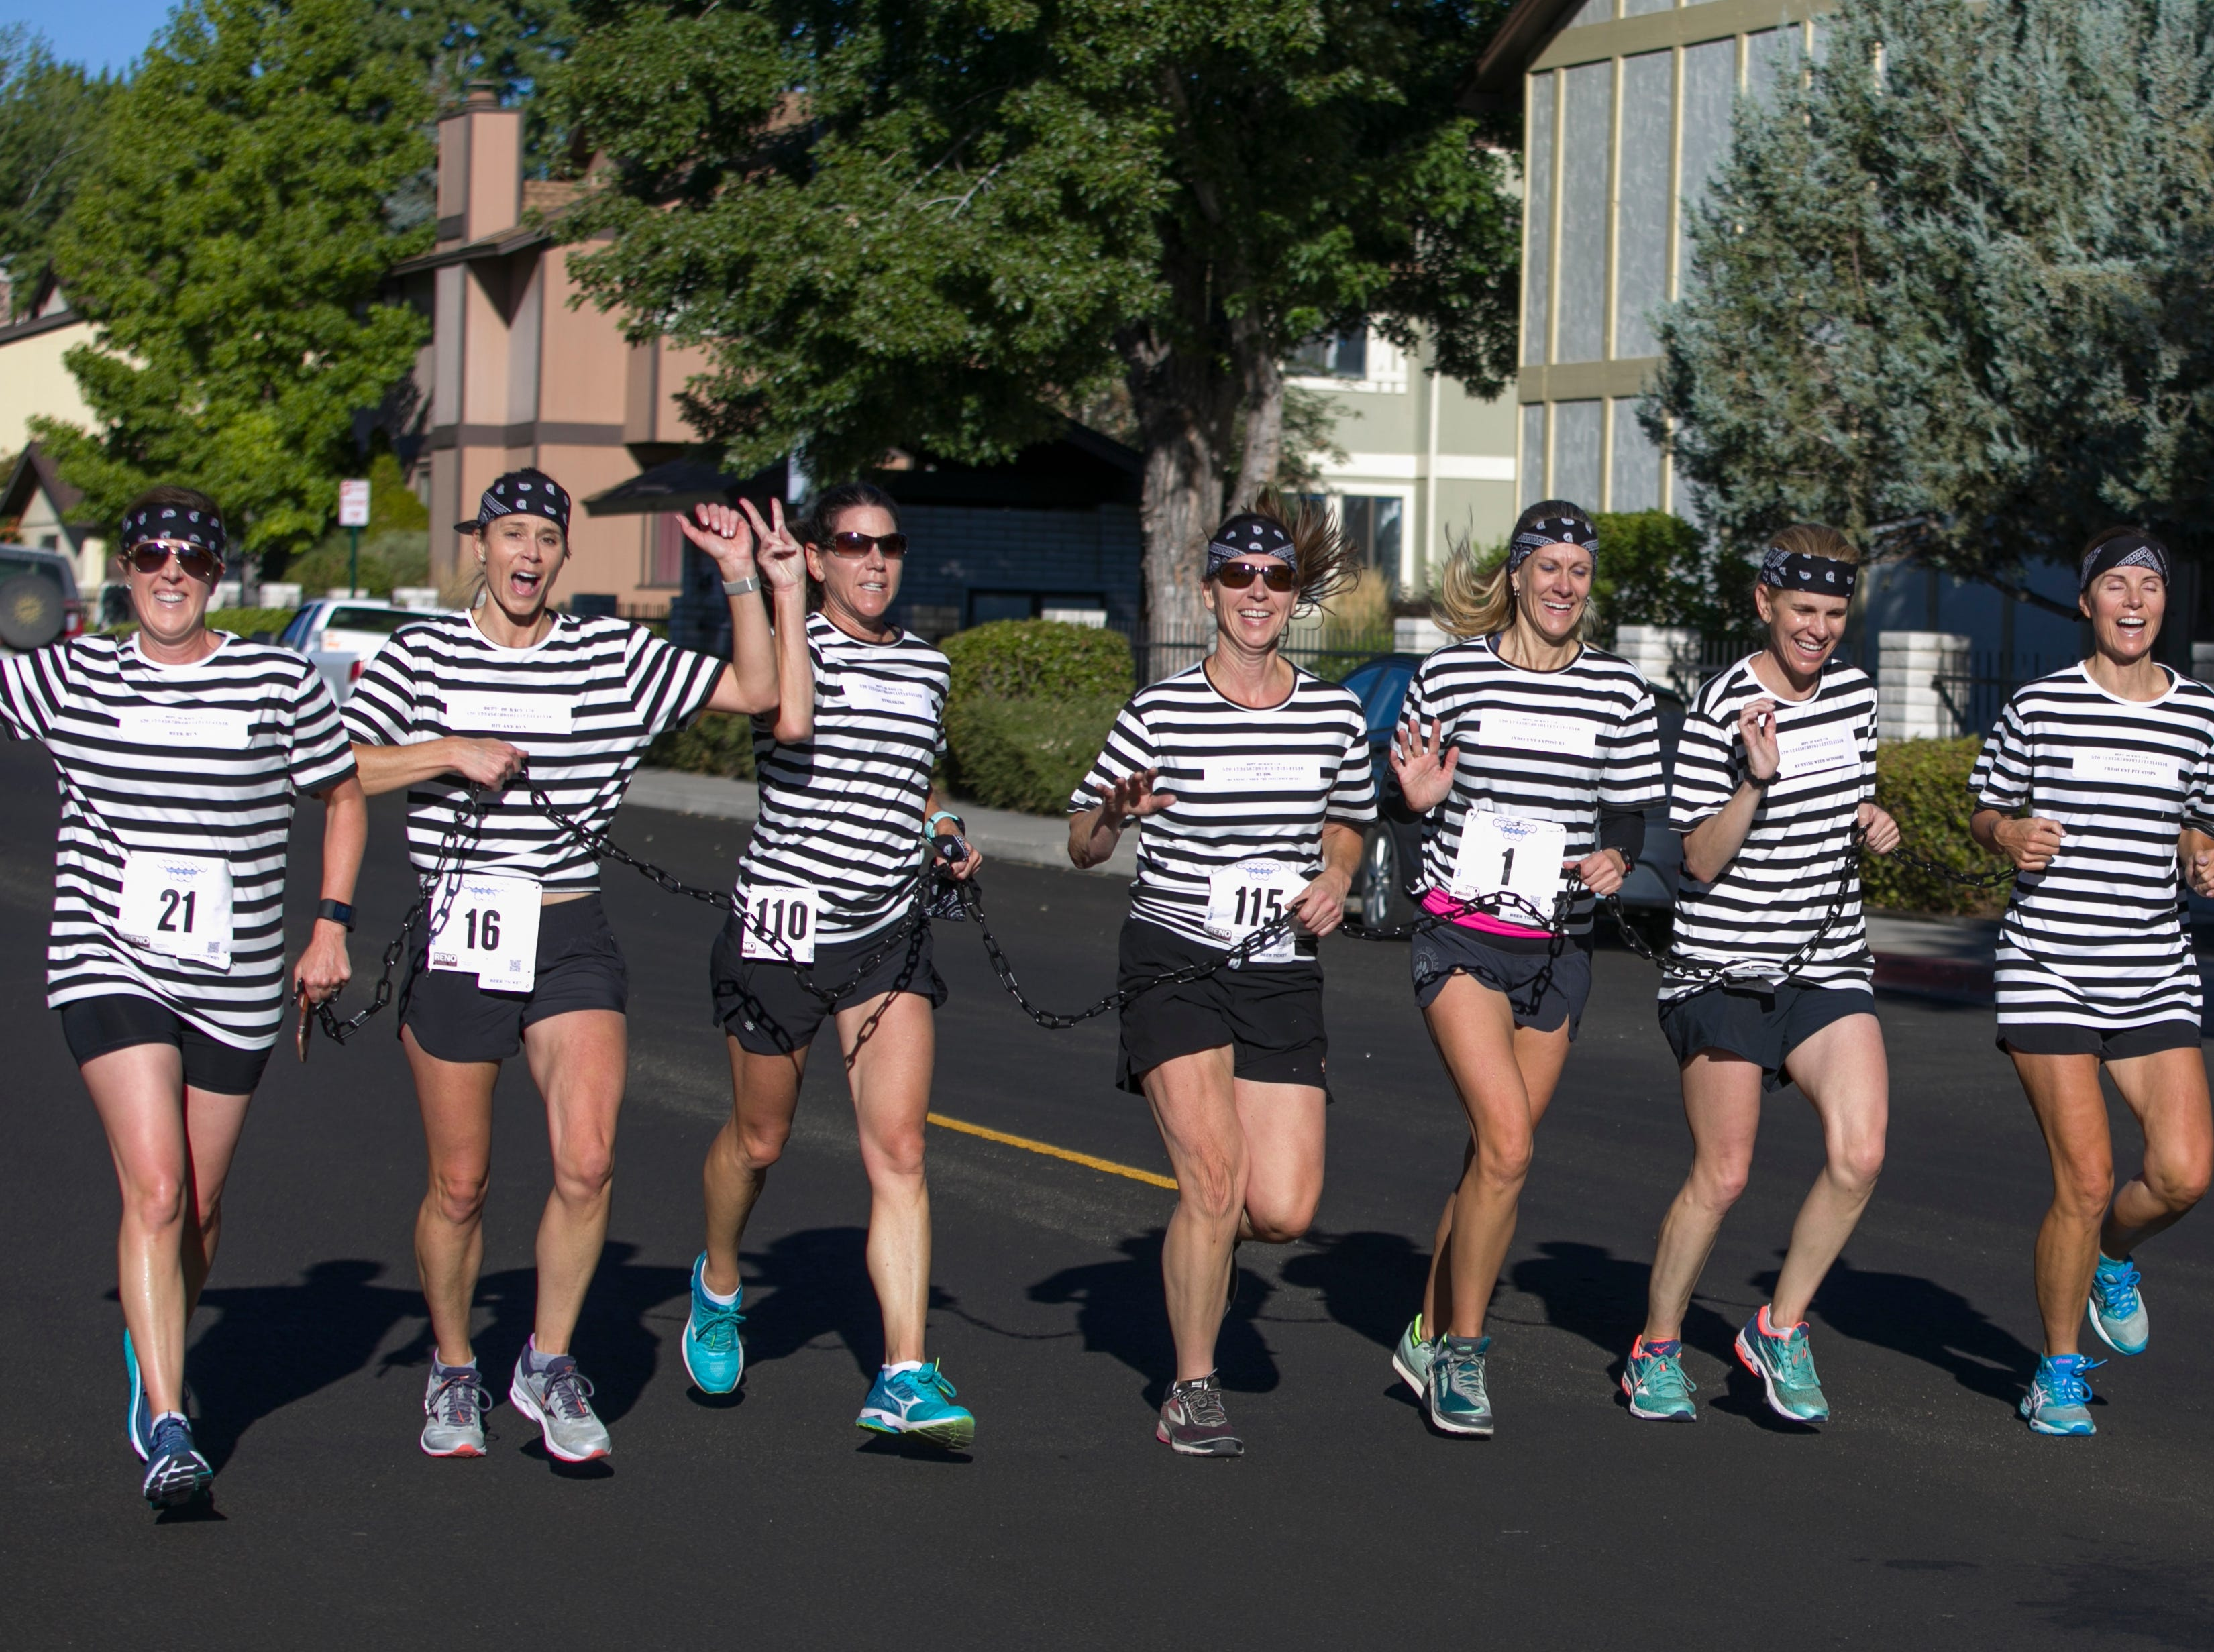 The 5:20 on the Run team during the 50th Annual Journal Jog in Reno, Nevada on Sunday, September 9, 2018.